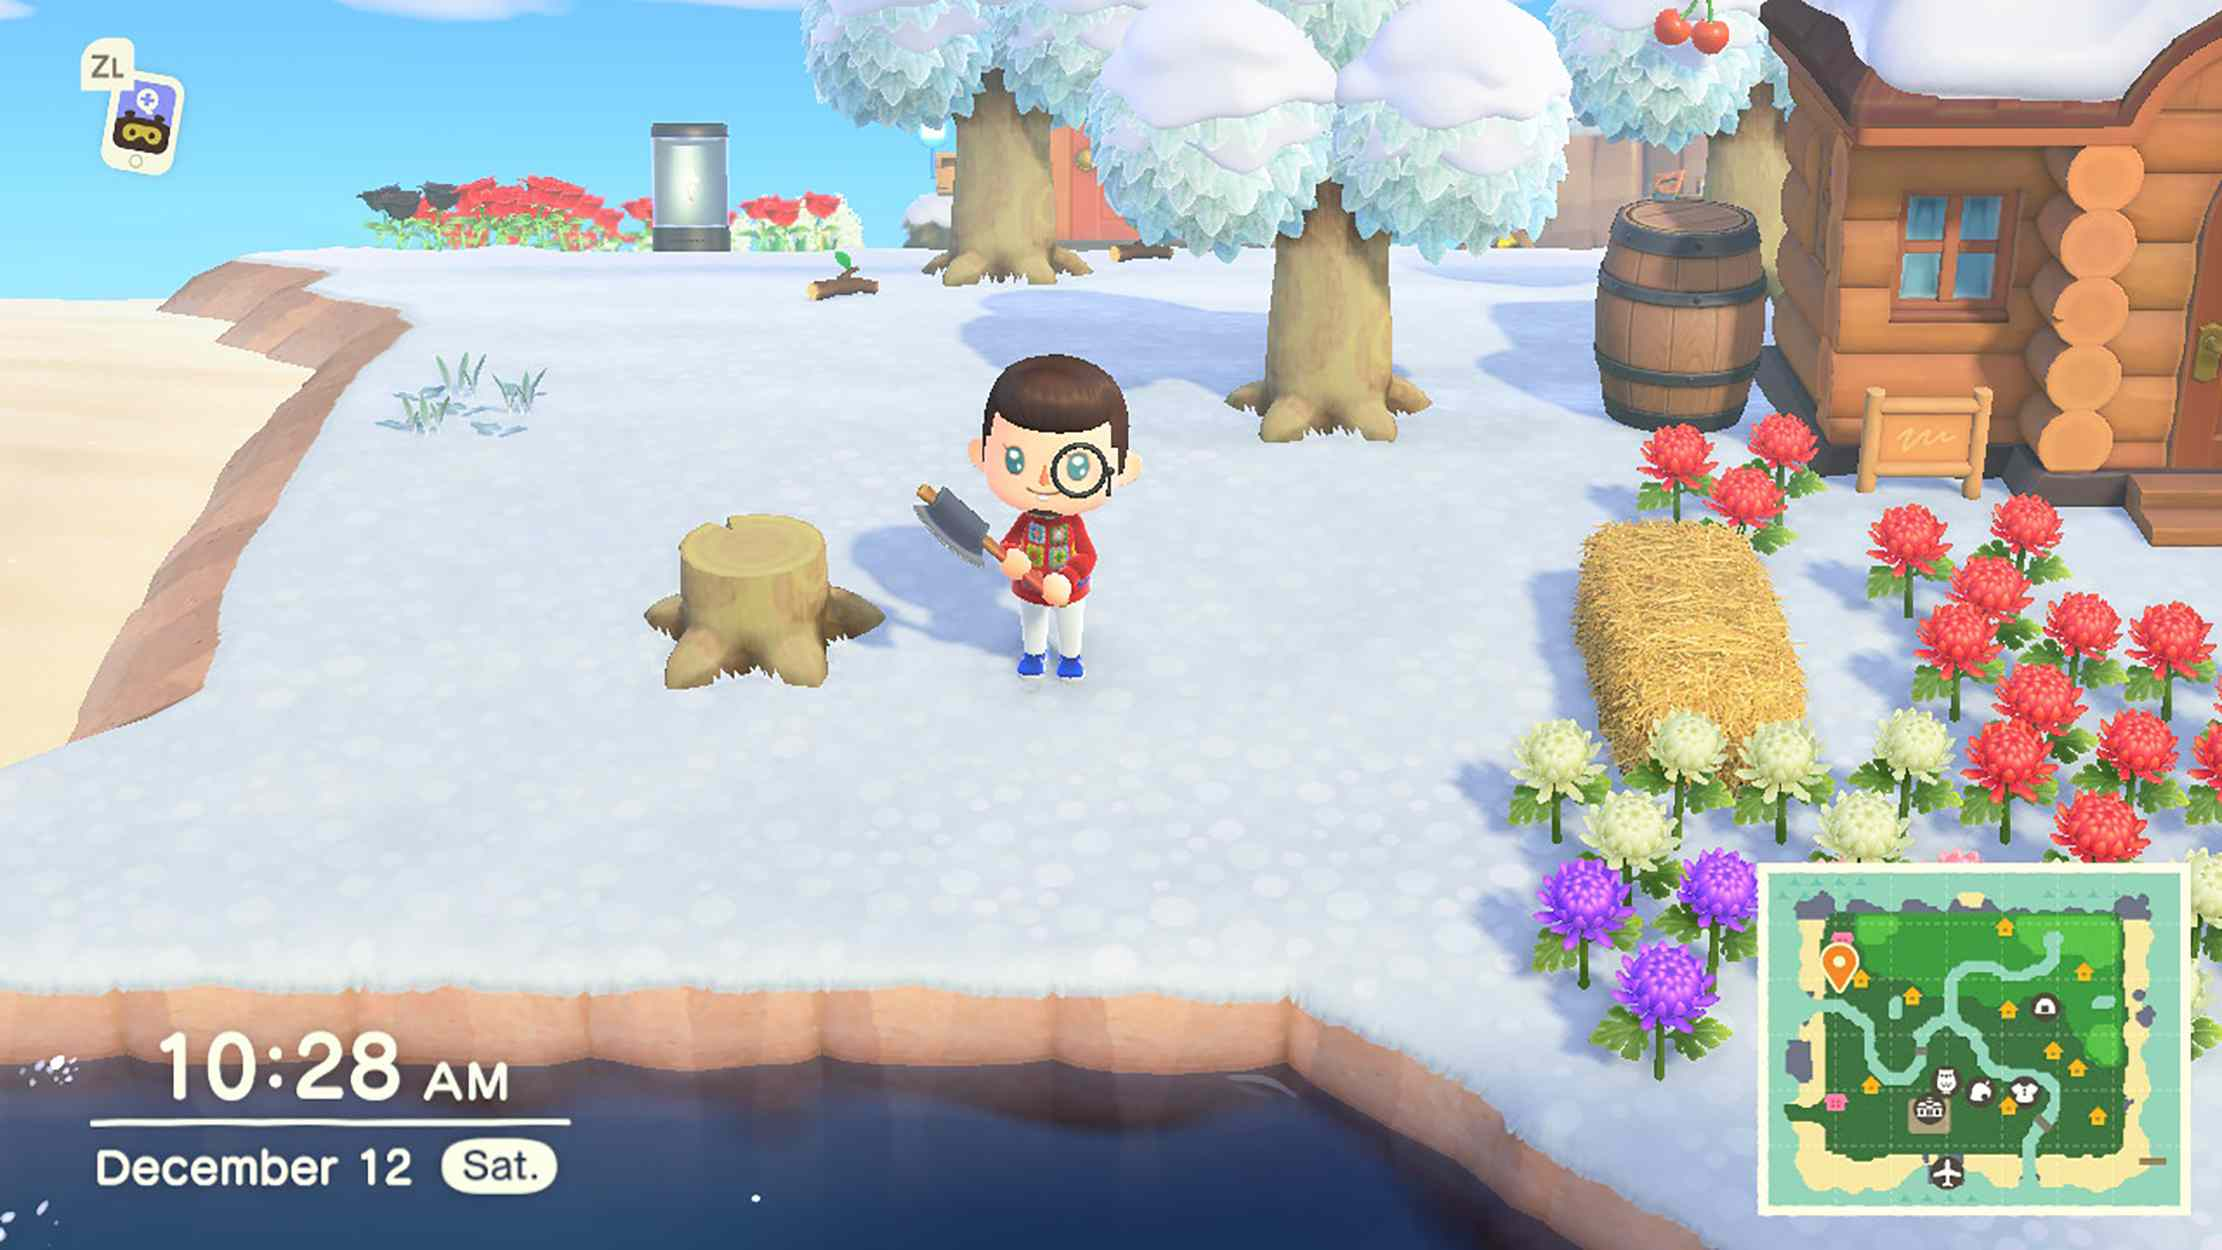 Screenshot of Animal Crossing New Horizons character with a tree stump